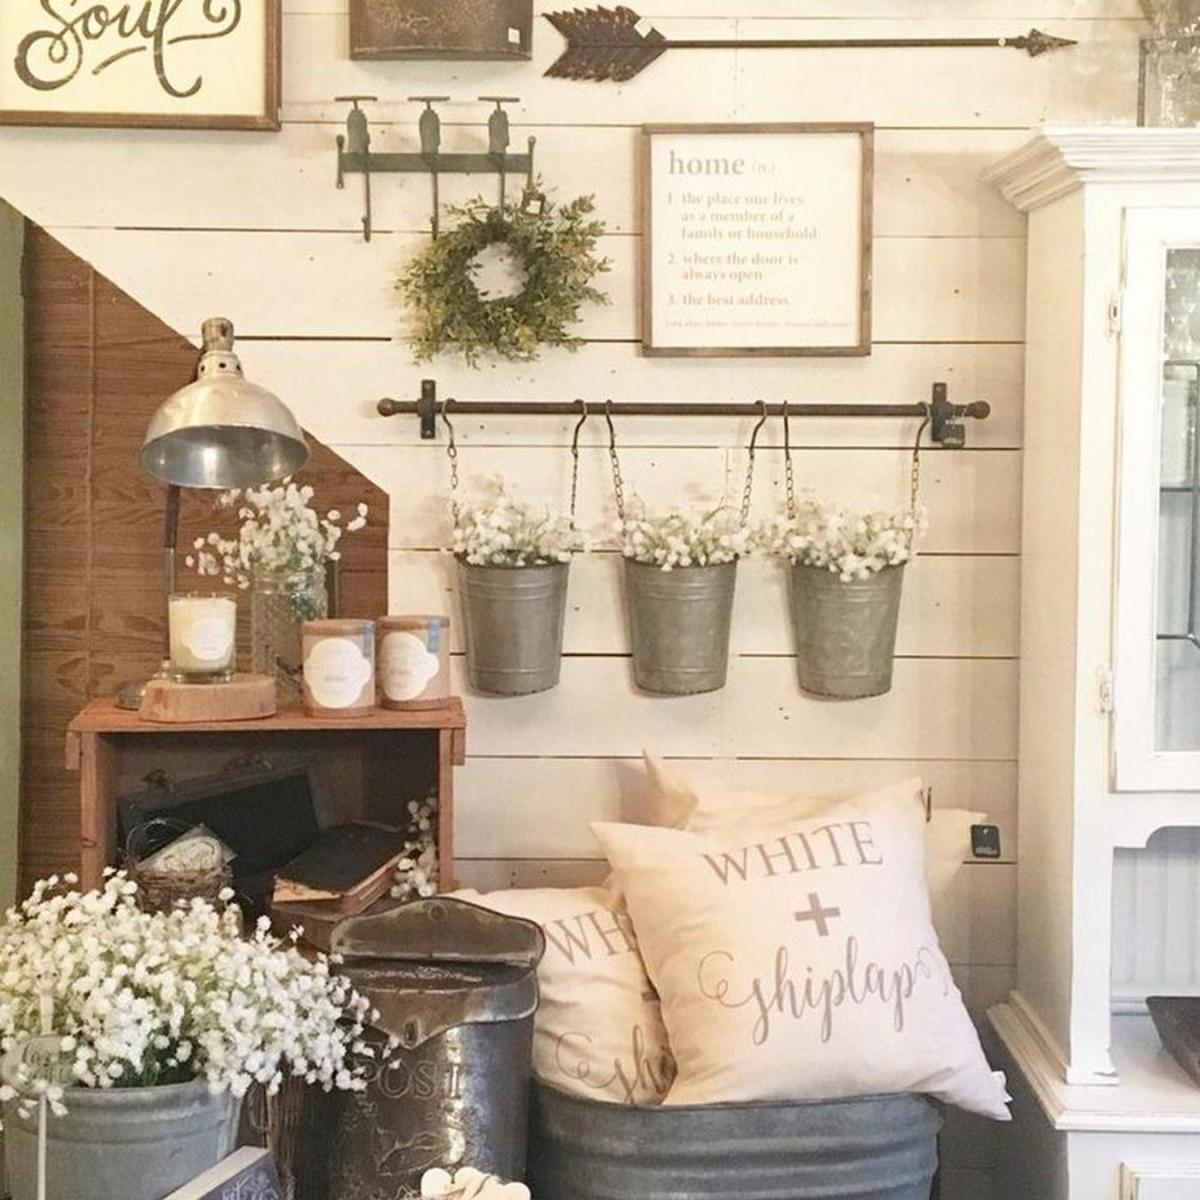 Shabby Chic Kitchen Wall Decorating Ideas 21